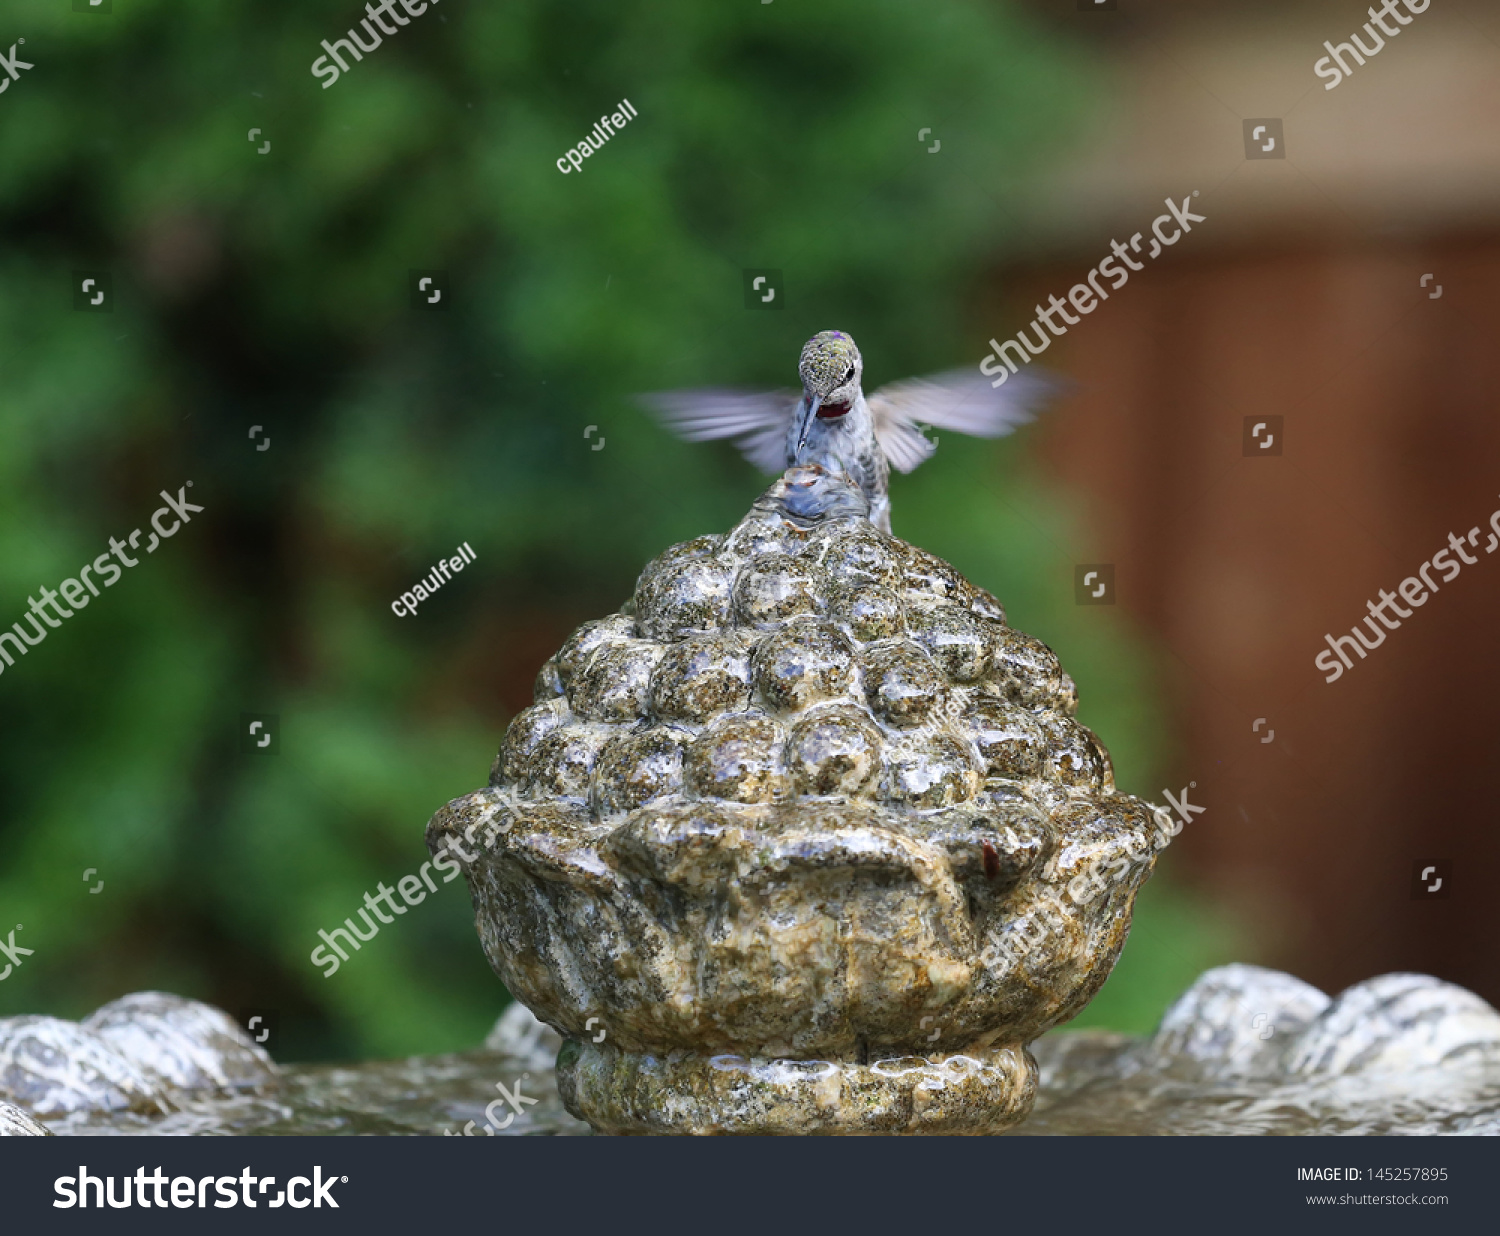 stock-photo-anna-s-hummingbird-bathing-i